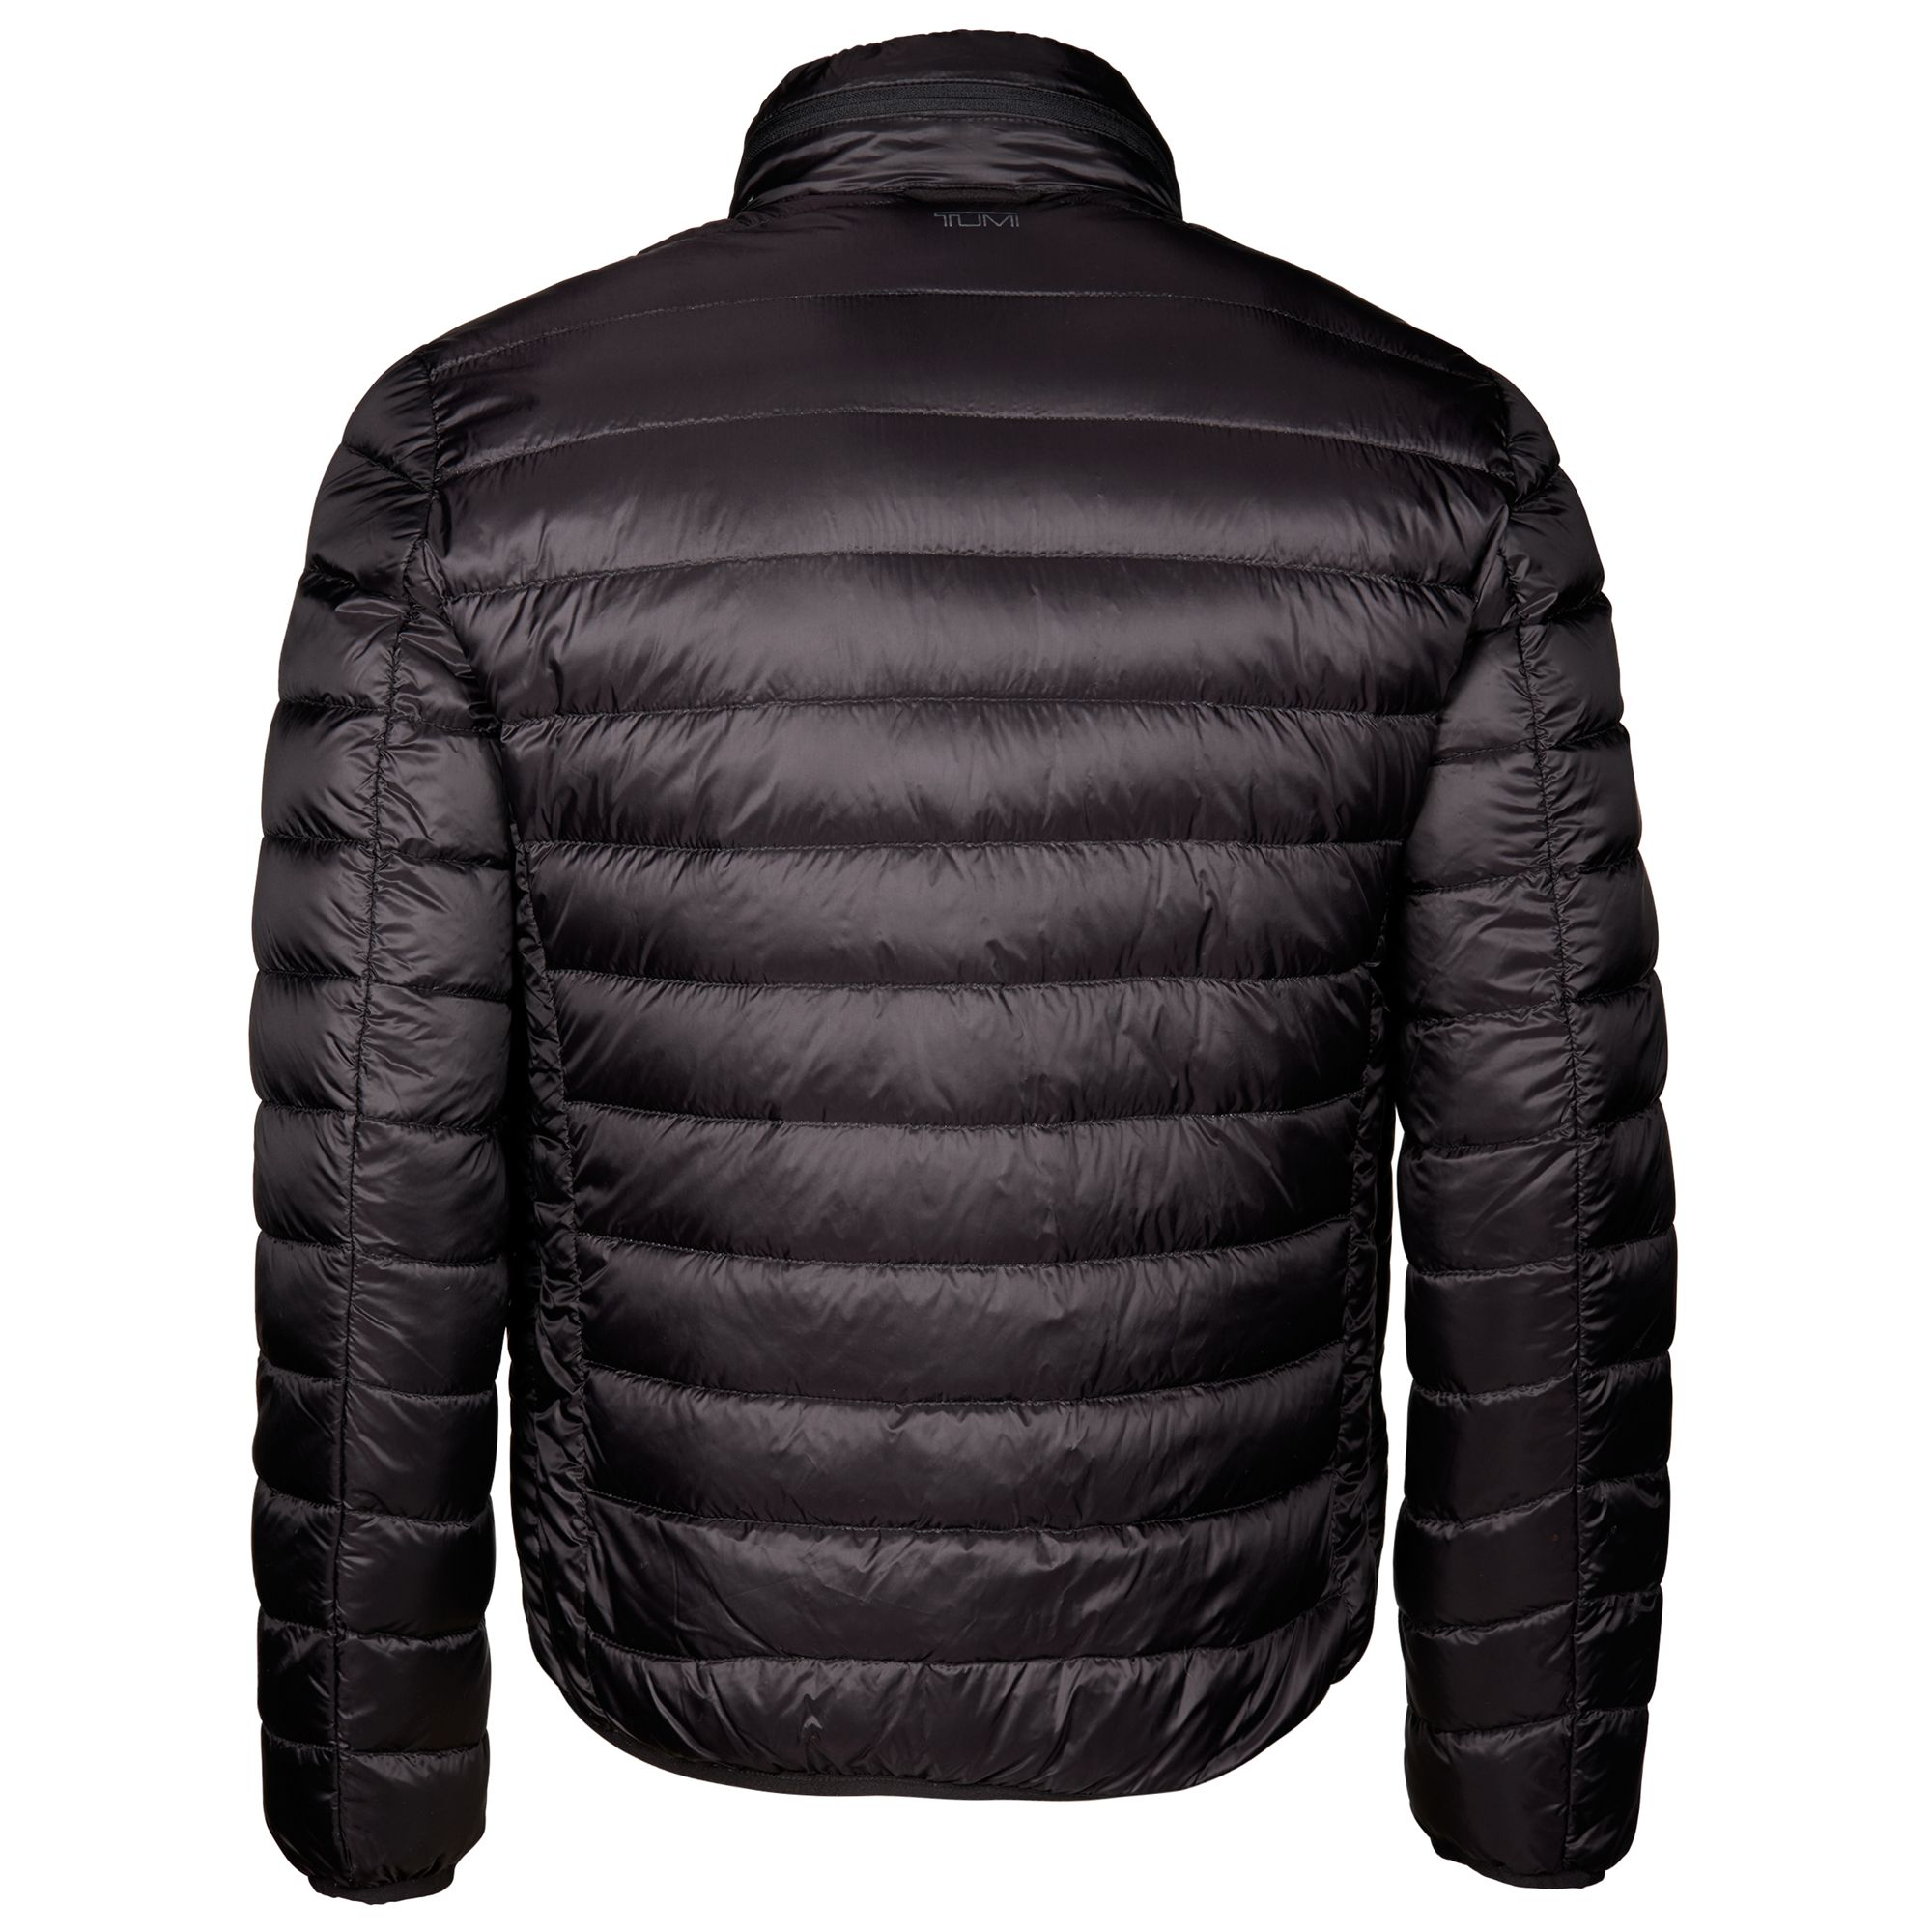 ec26f3dde96 Tumi Mens and Women's - PACKABLE TRAVEL PUFFER JACKET